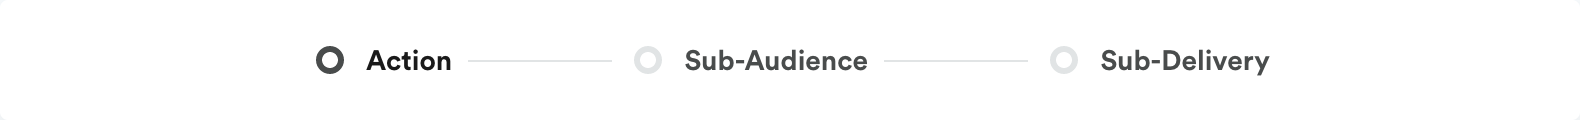 Use the stepper navigation to scroll between action's Content, Sub-Audience and Sub-Delivery.